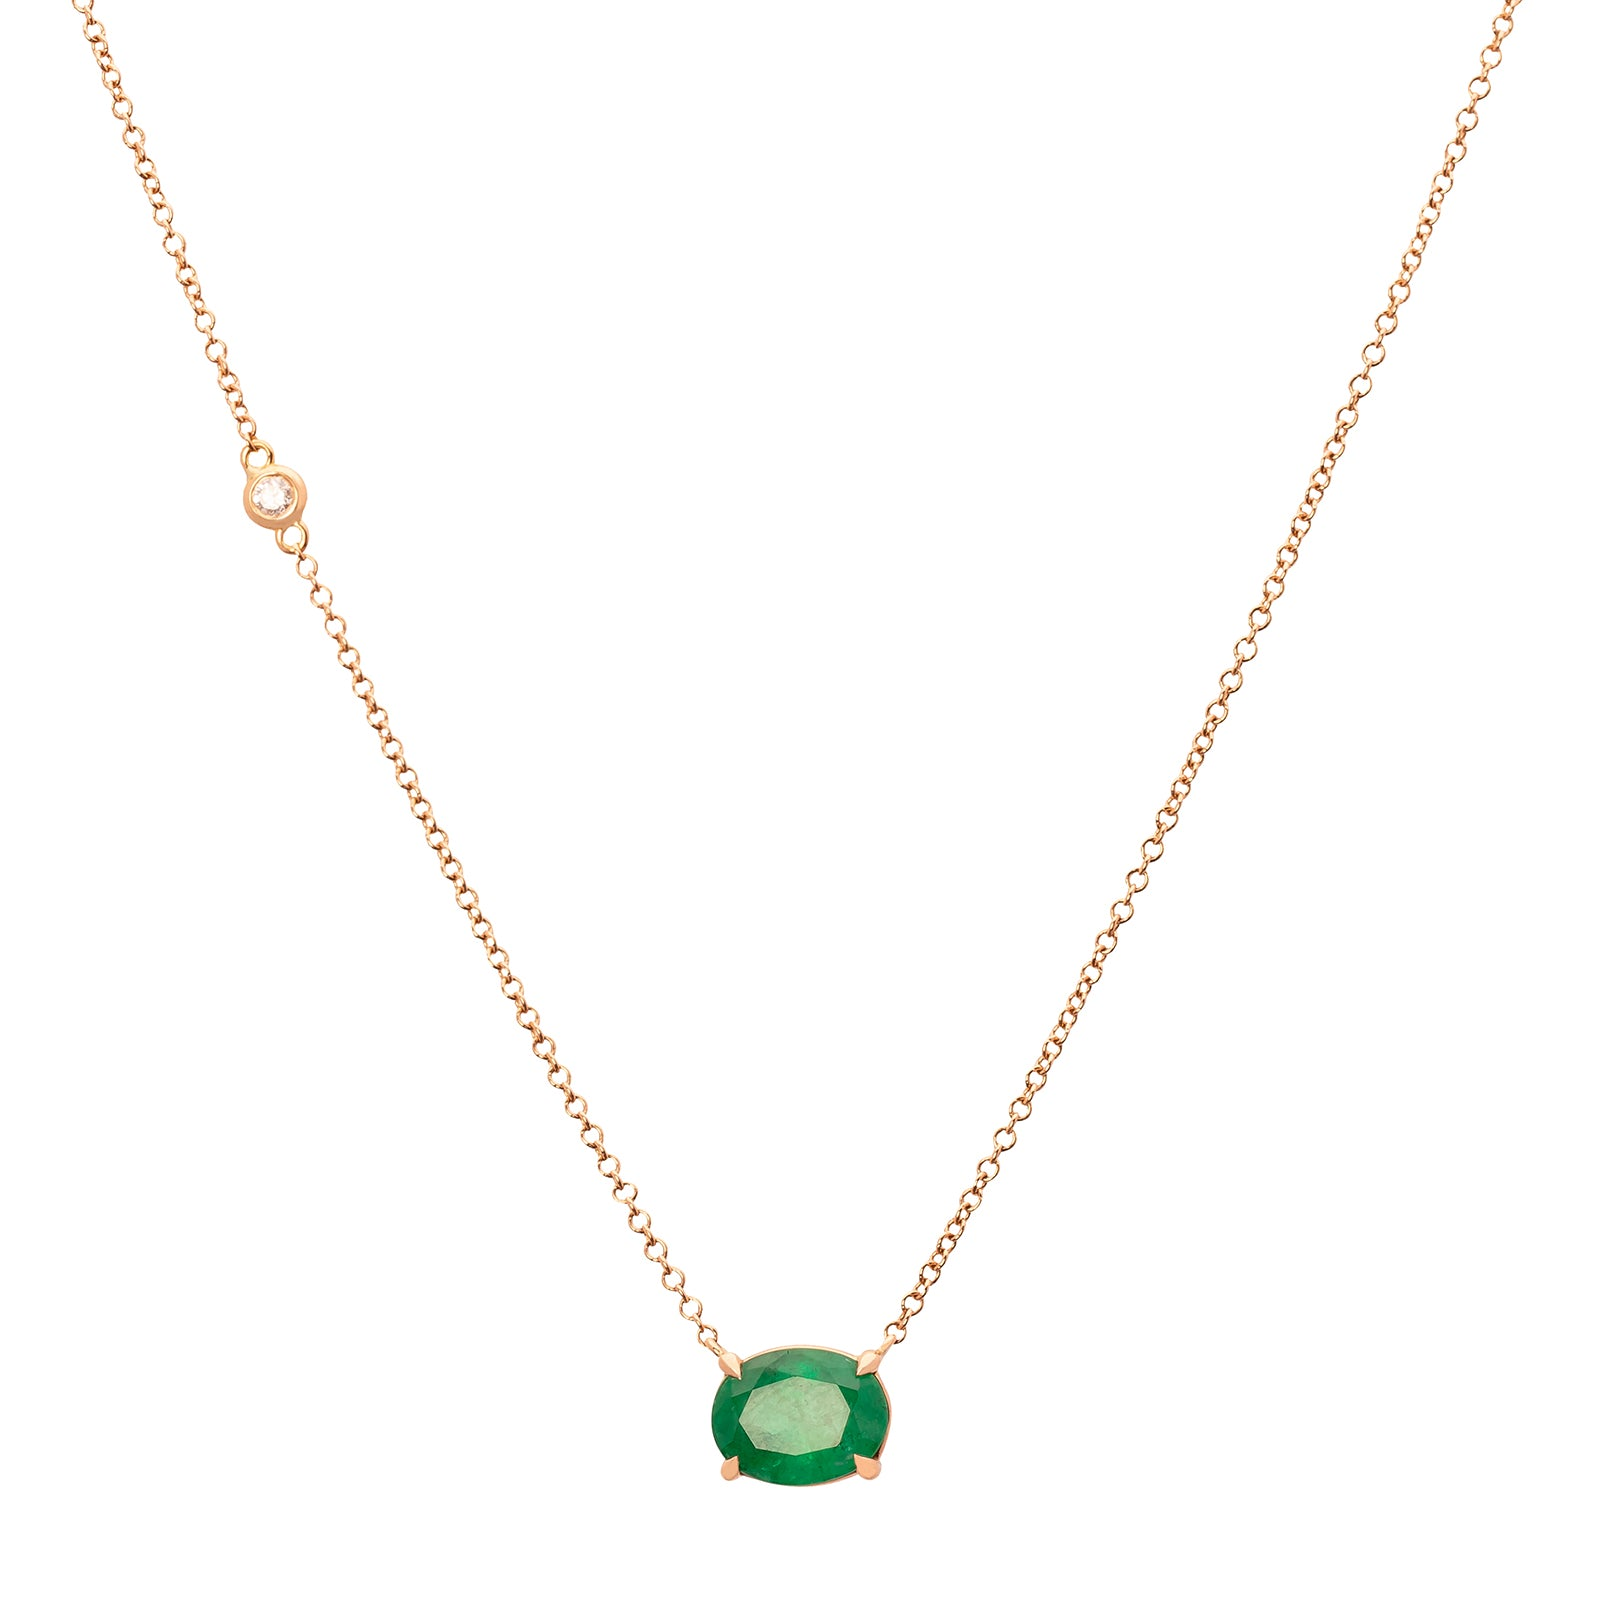 Shay Oval Emerald Pendant Necklace - Rose Gold - Necklaces - Broken English Jewelry